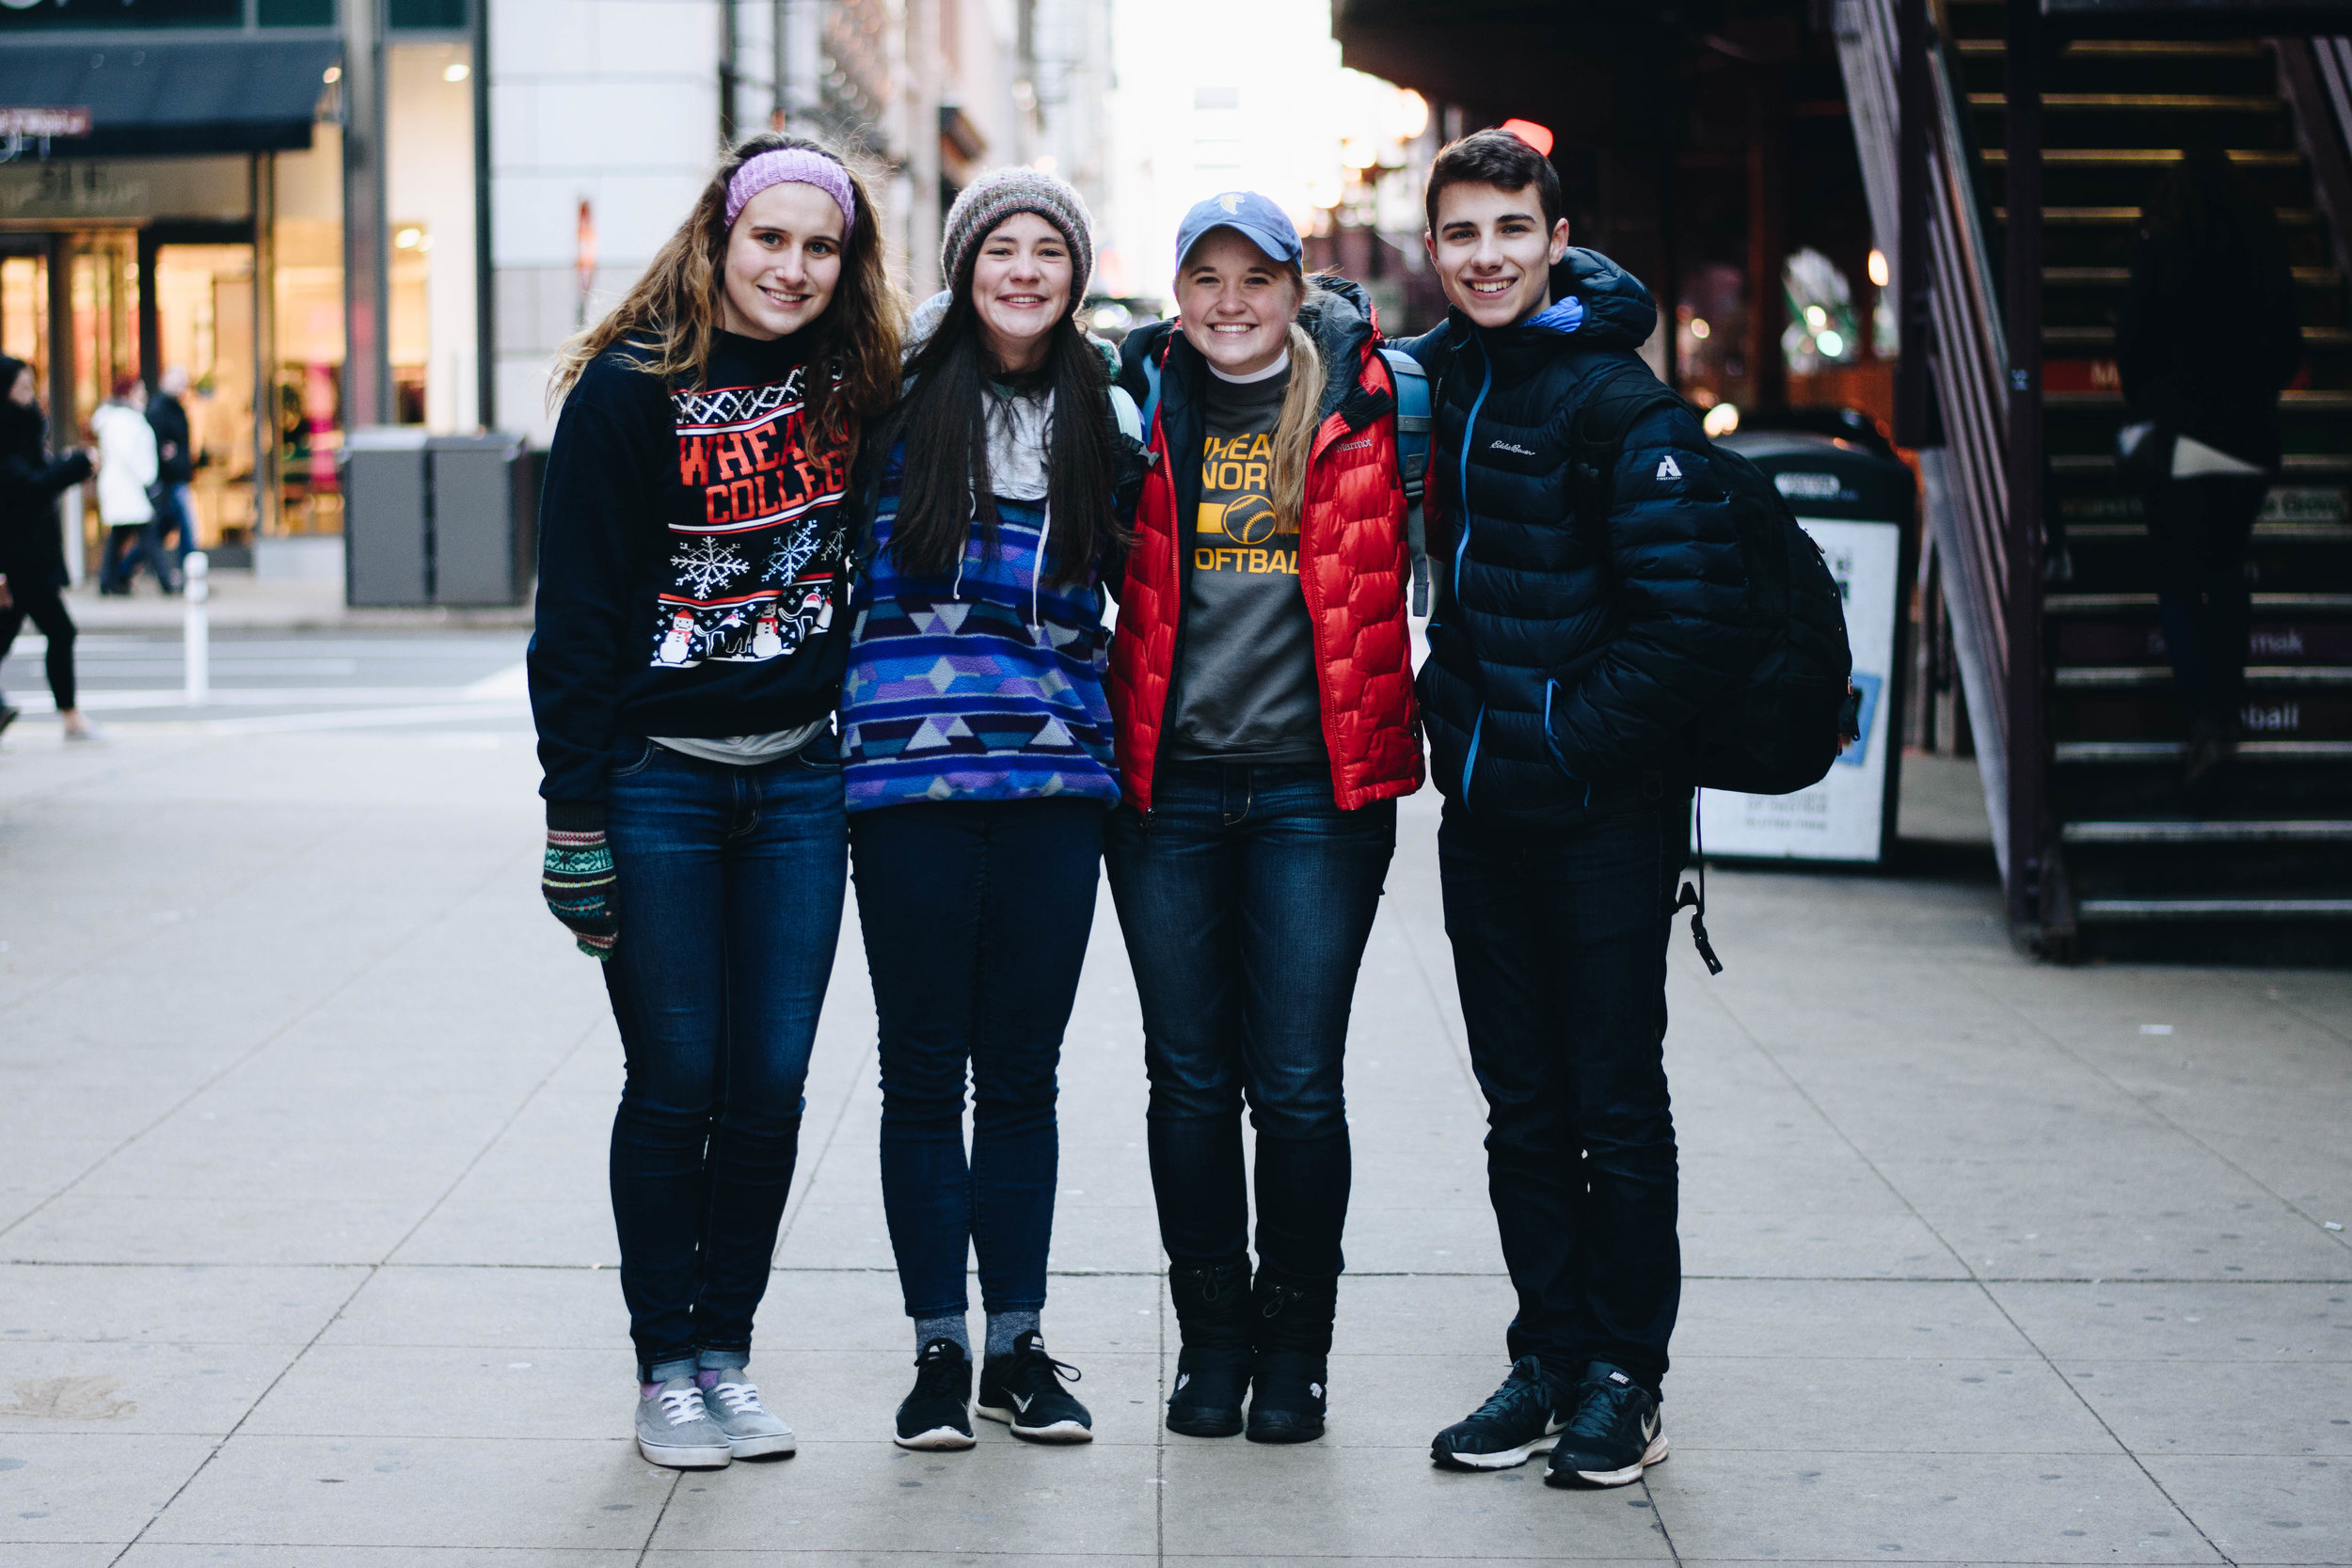 Betty, Eleah, Hannah, and Mark | State Street | November 20, 2016